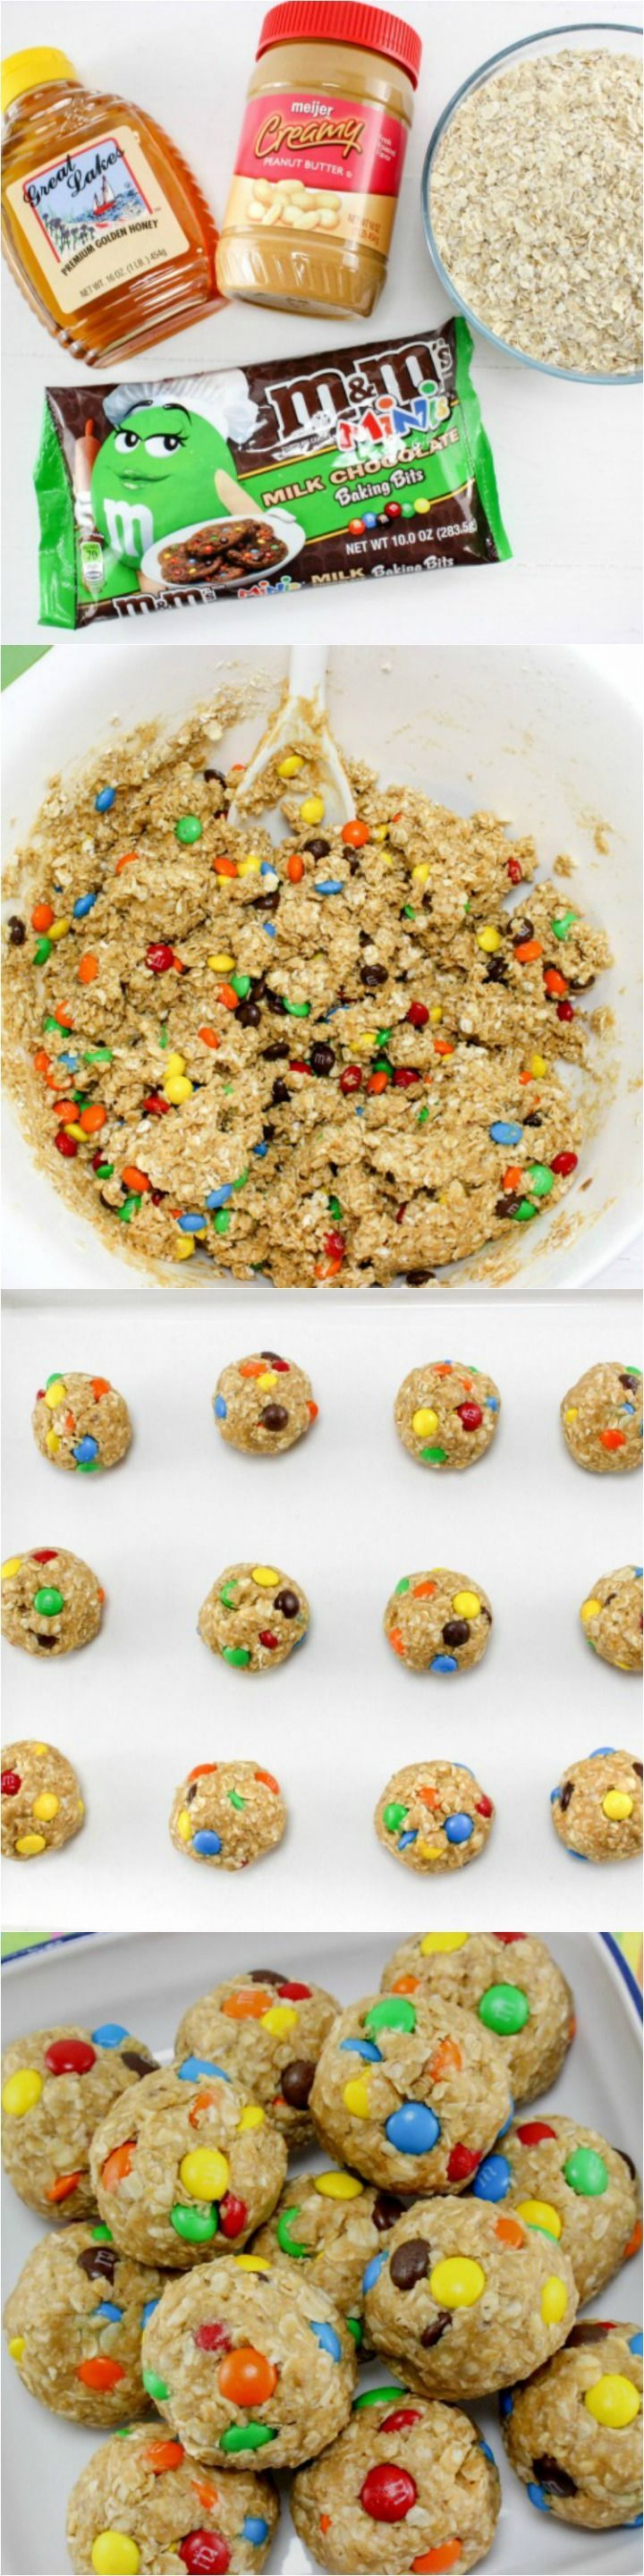 No Bake Monster Cookie Oatmeal Balls - the perfect after school snack #nobake #afterschoolsnack #energyballs